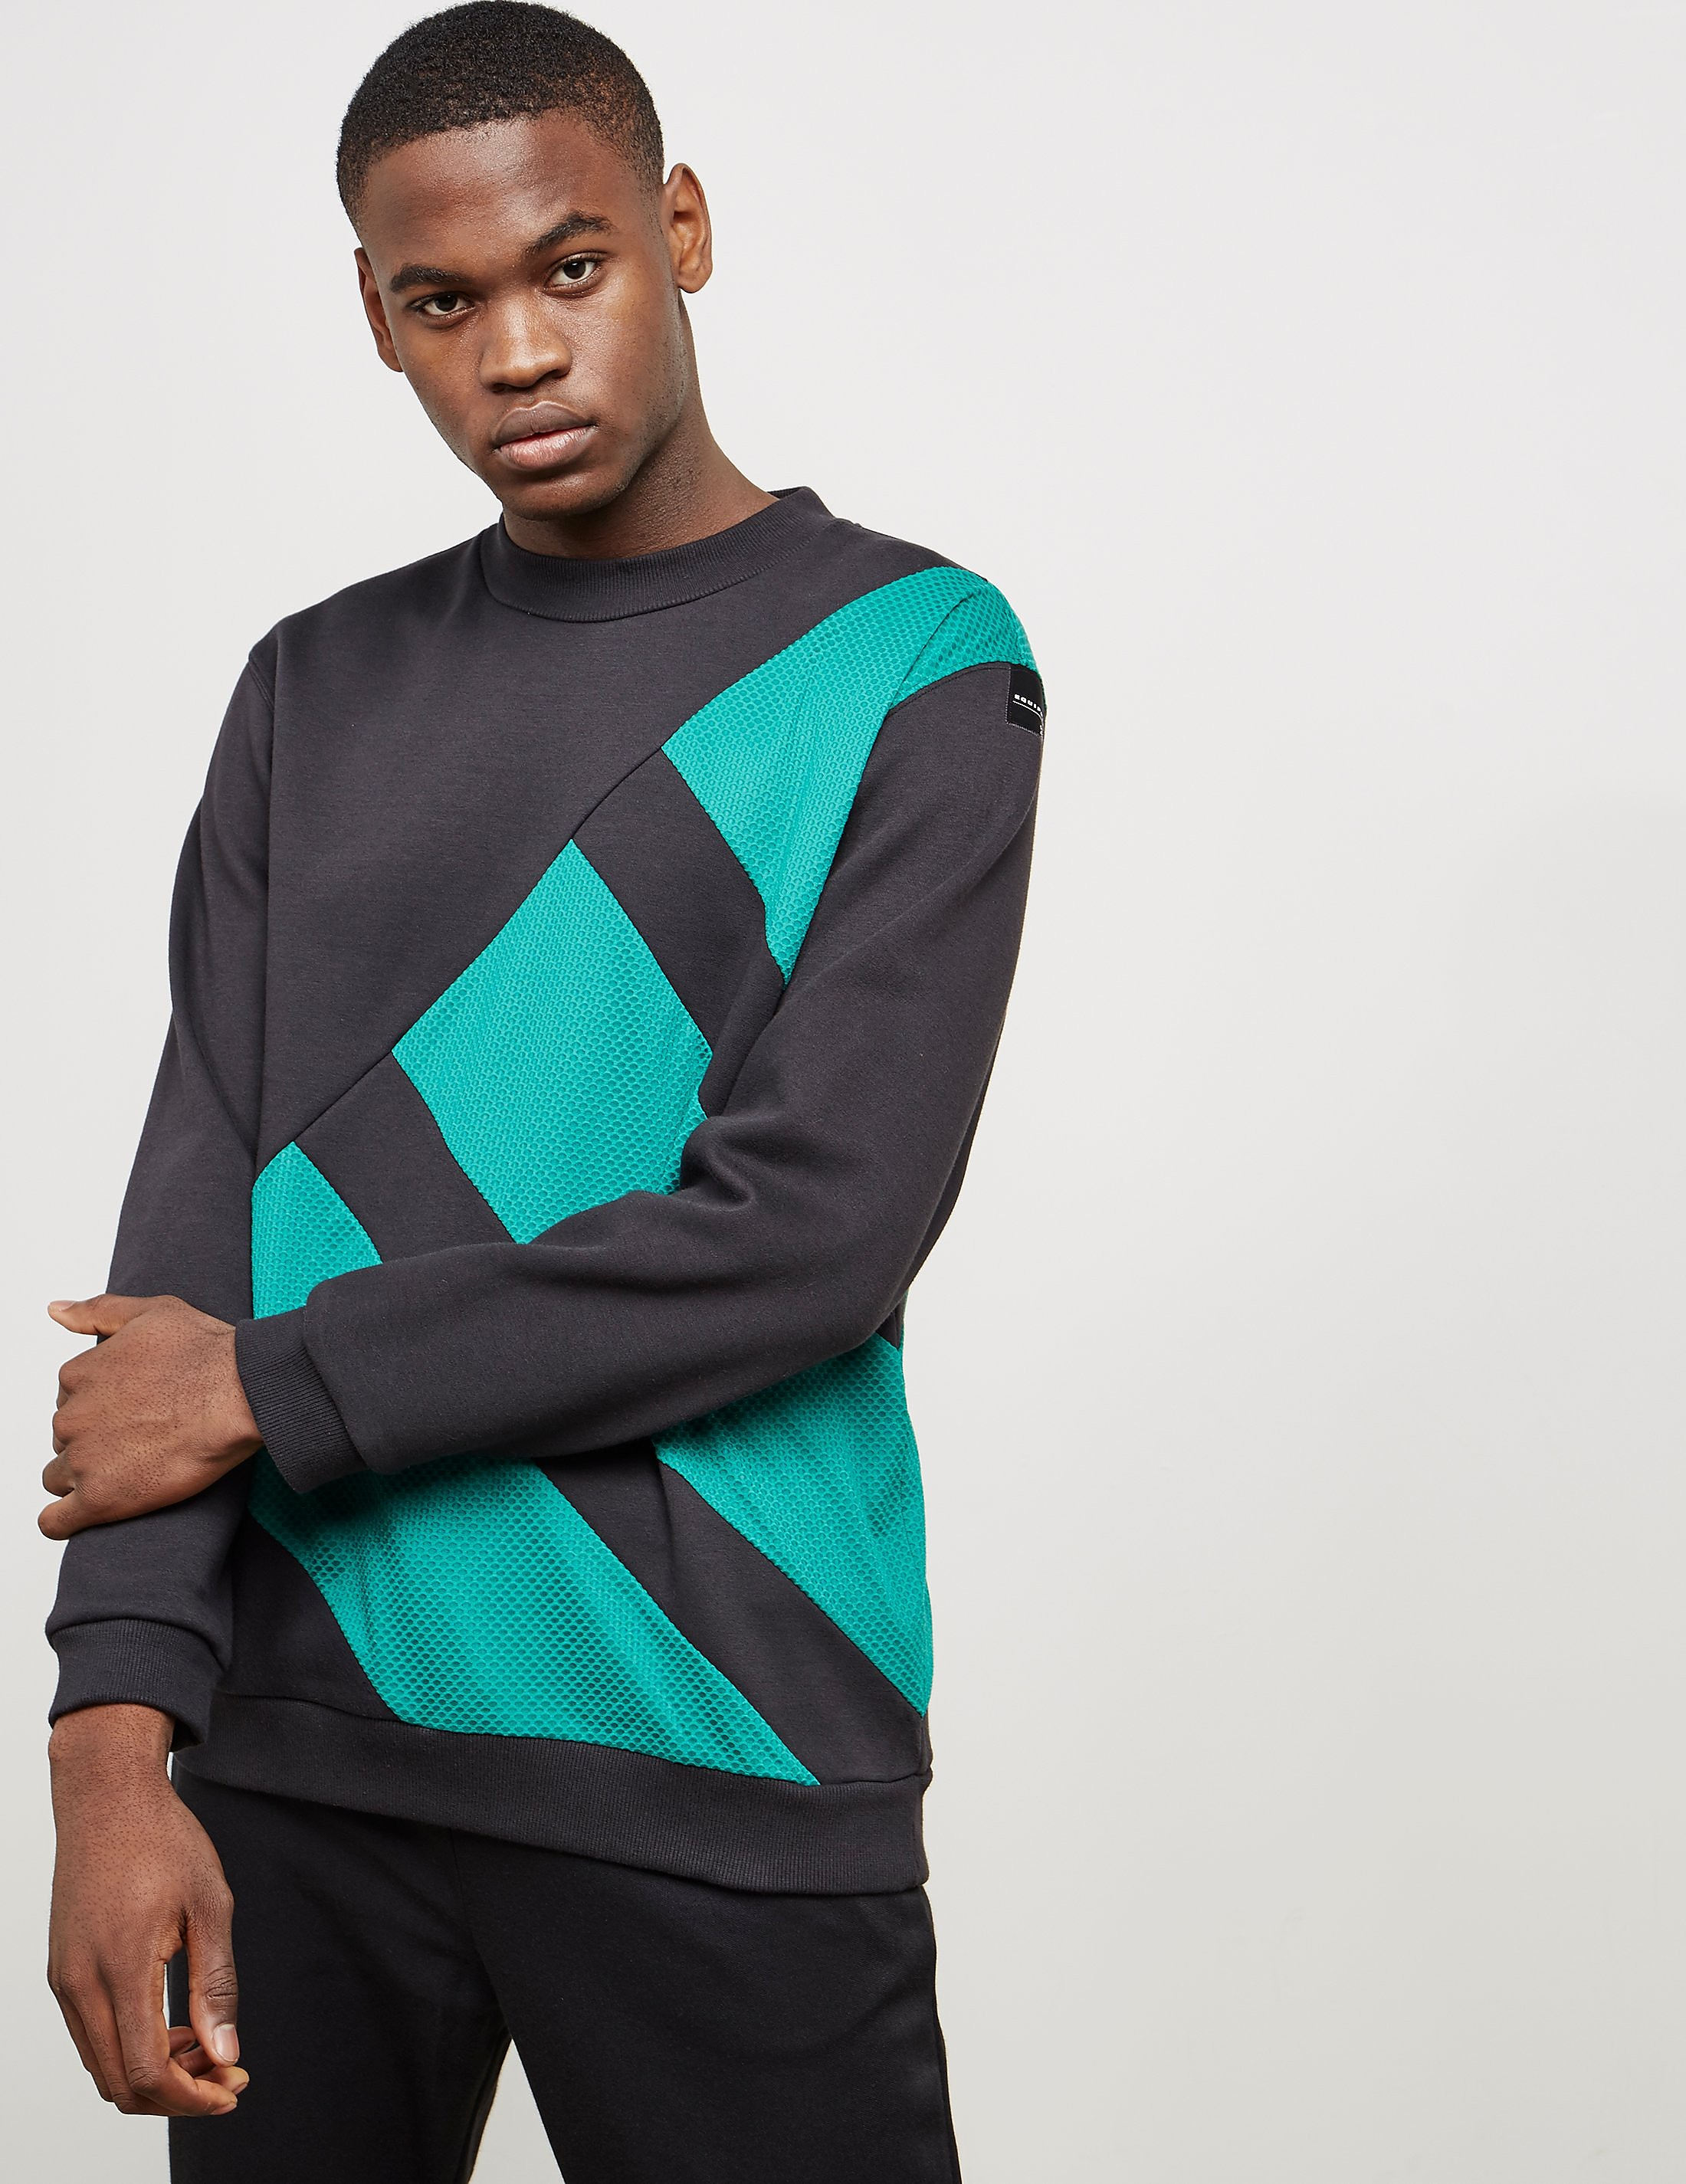 adidas Originals EQT Crewneck Sweatshirt